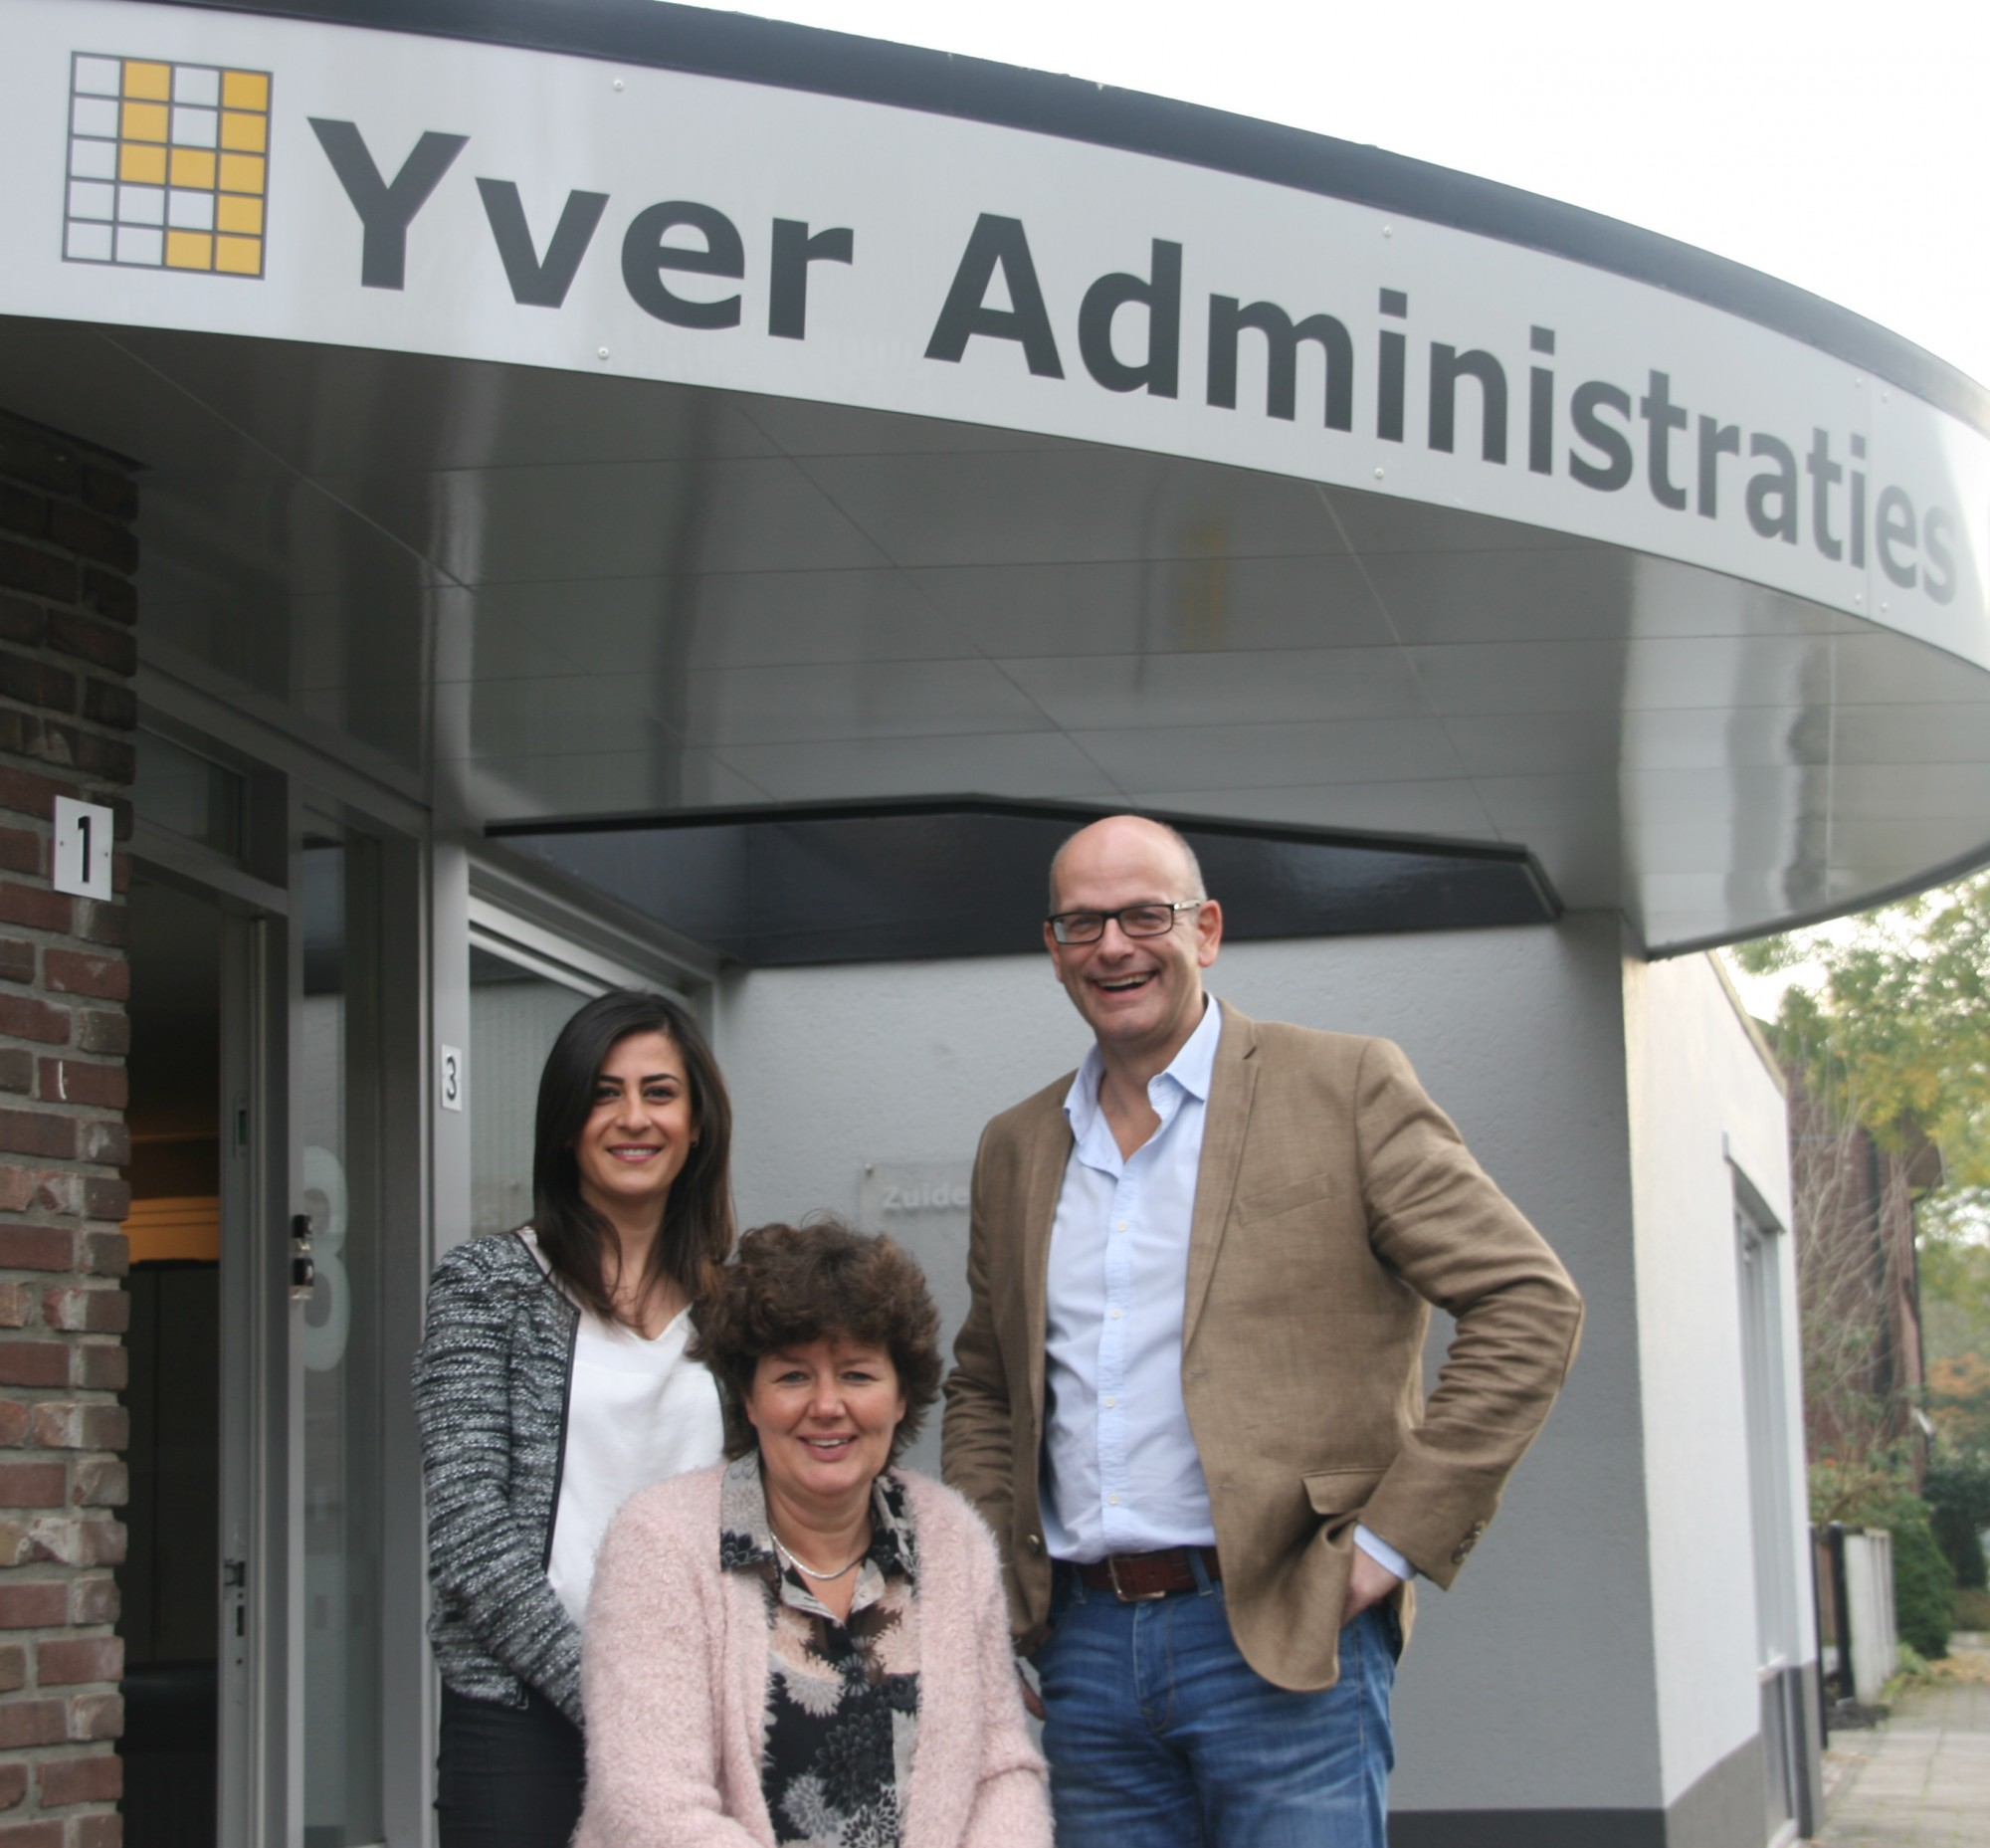 YVER administraties team